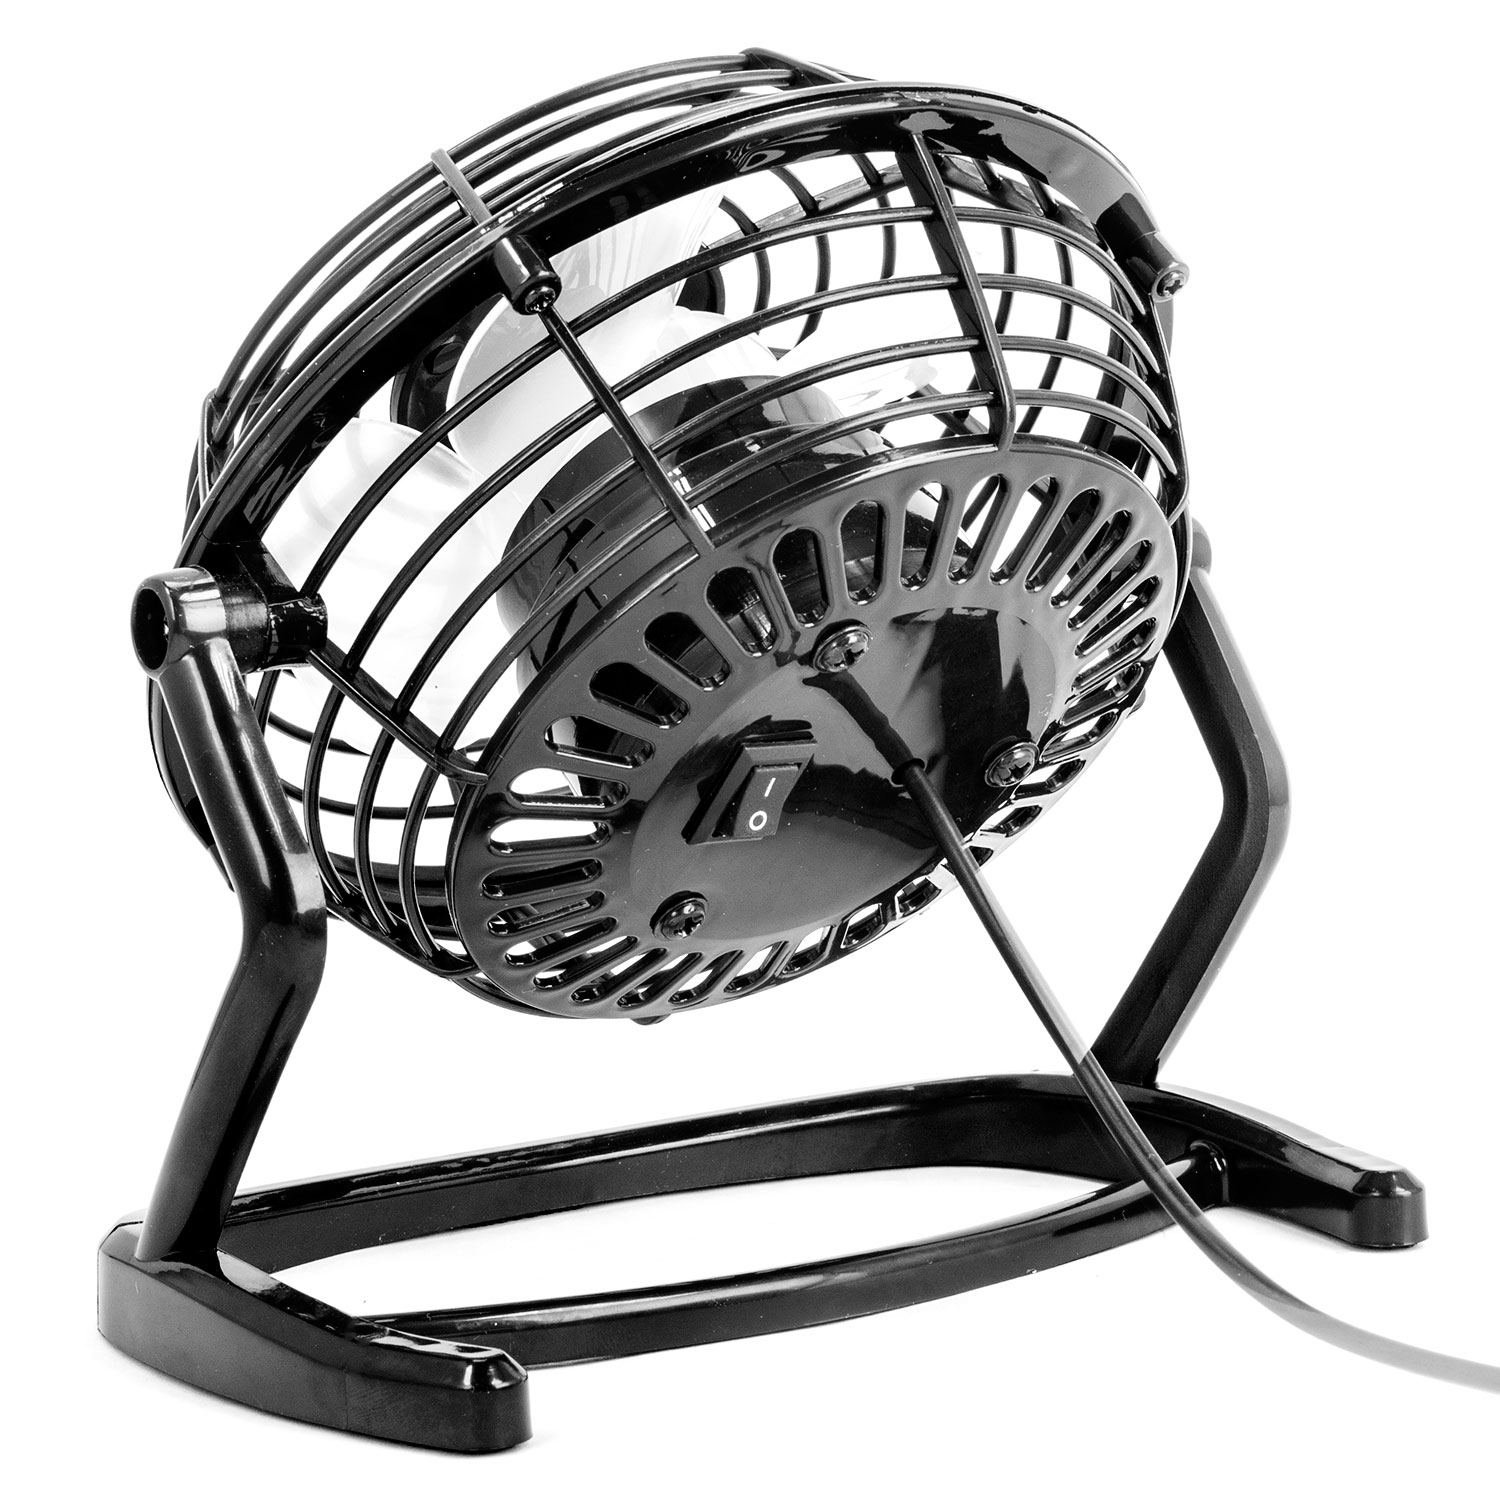 Executive Desk USB Fan